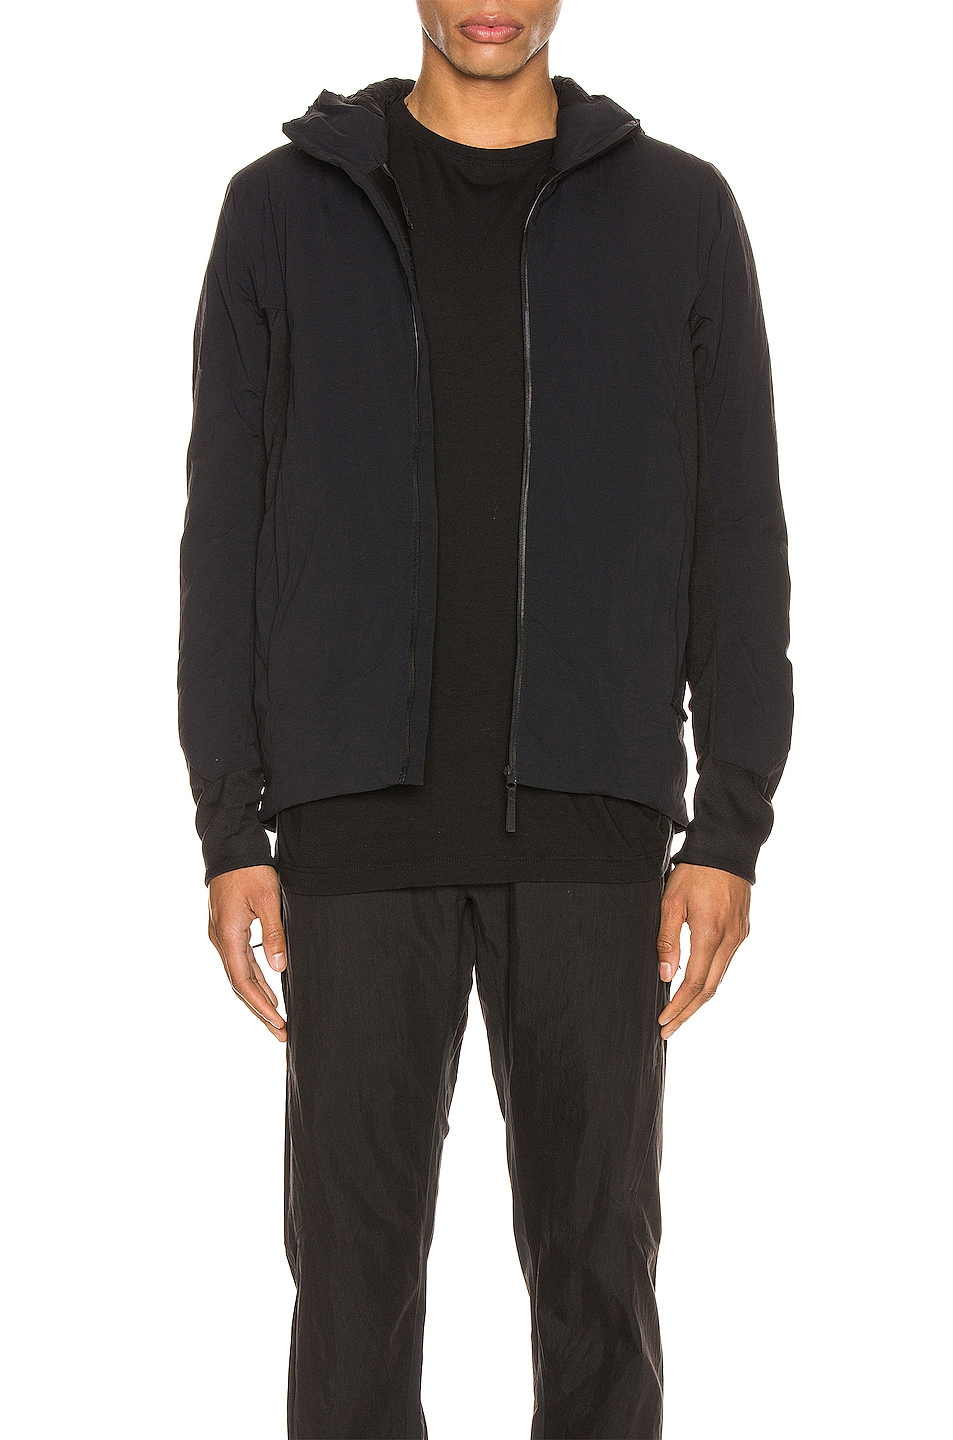 Image 1 of Veilance Mionn IS Comp Hooded Jacket in Black